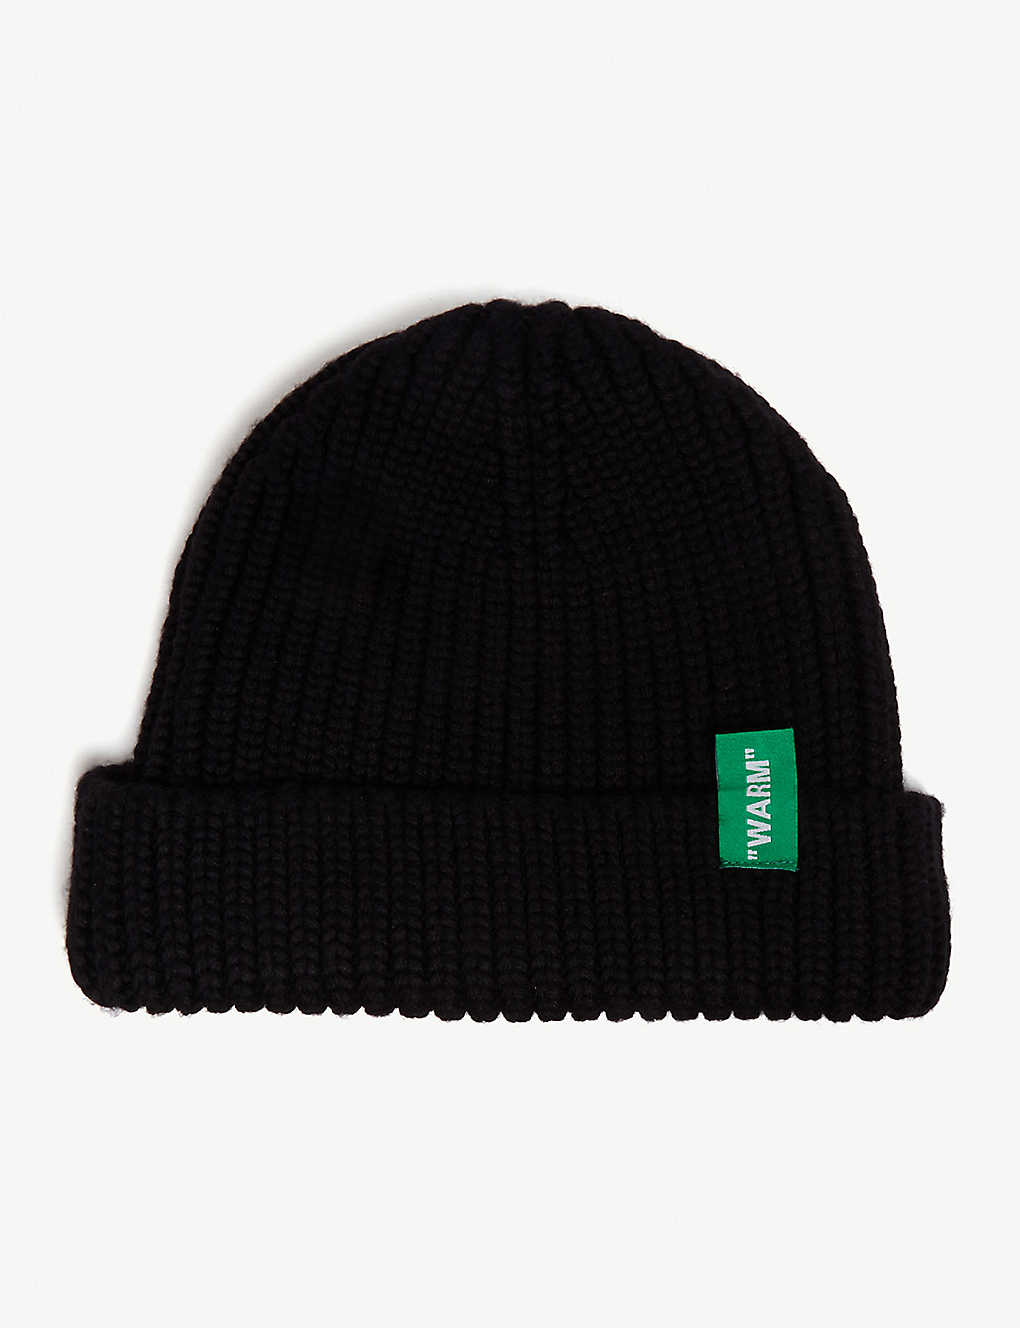 198d81c95b200 OFF-WHITE C O VIRGIL ABLOH - Logo cable-knit wool beanie ...